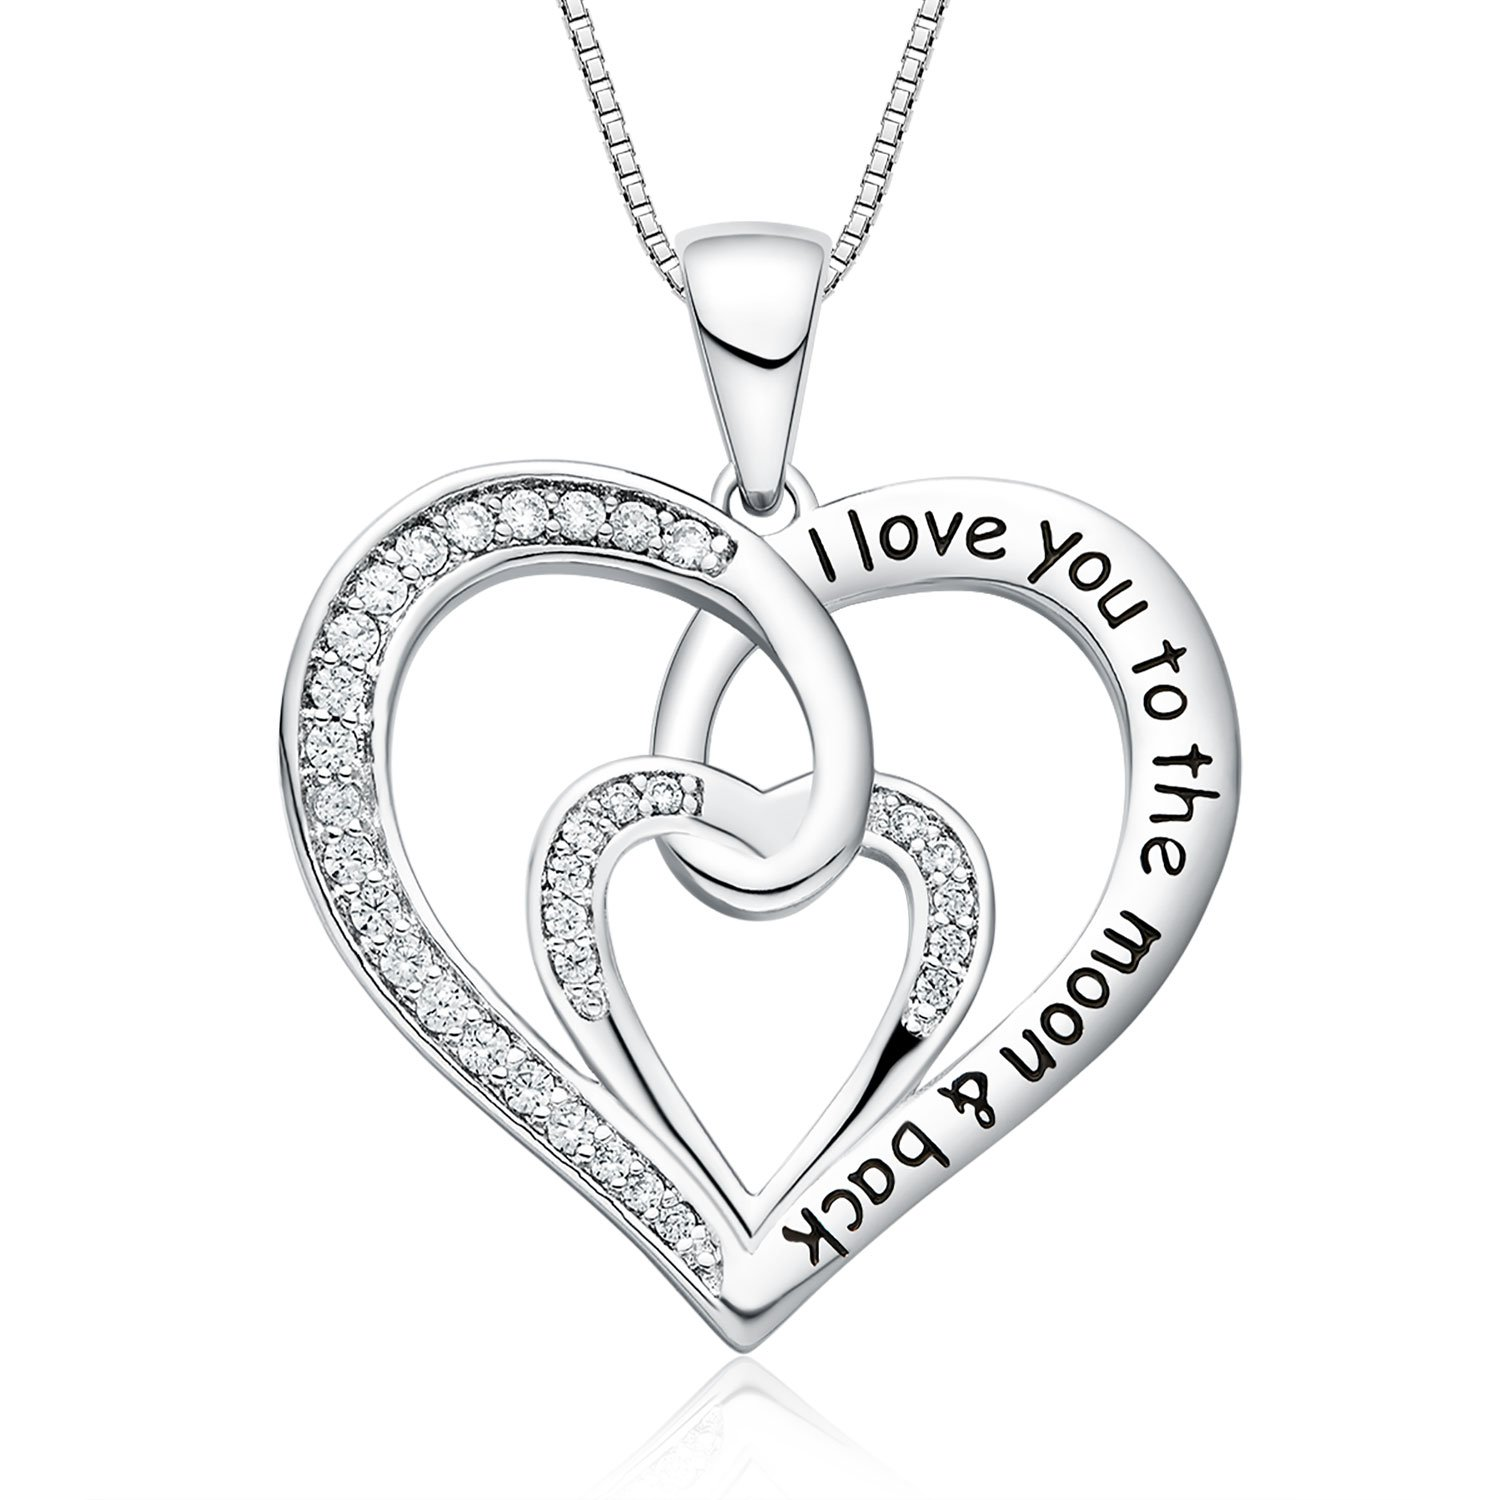 FANCYCD I Love You to the Moon and Back Love Heart Necklace, 18'', Jewelry for Women & Girls, Special Gifts for Girlfriend, Wife, Sister, Aunt, Grandma, Mom by FANCYCD (Image #1)